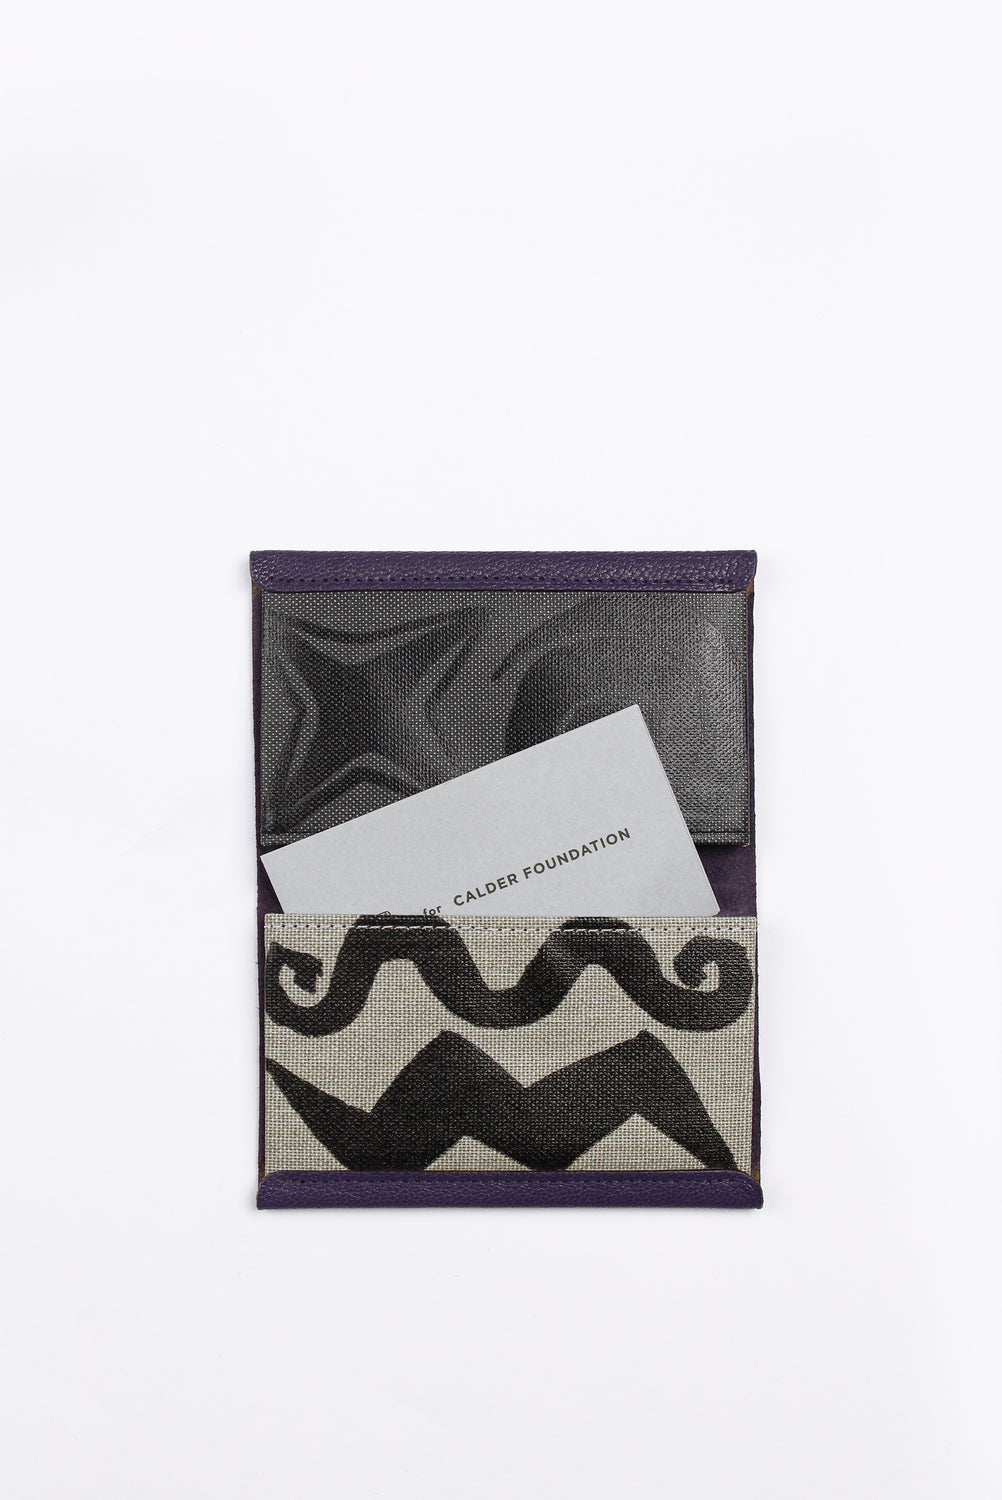 Postalco for Calder Foundation Card Holder